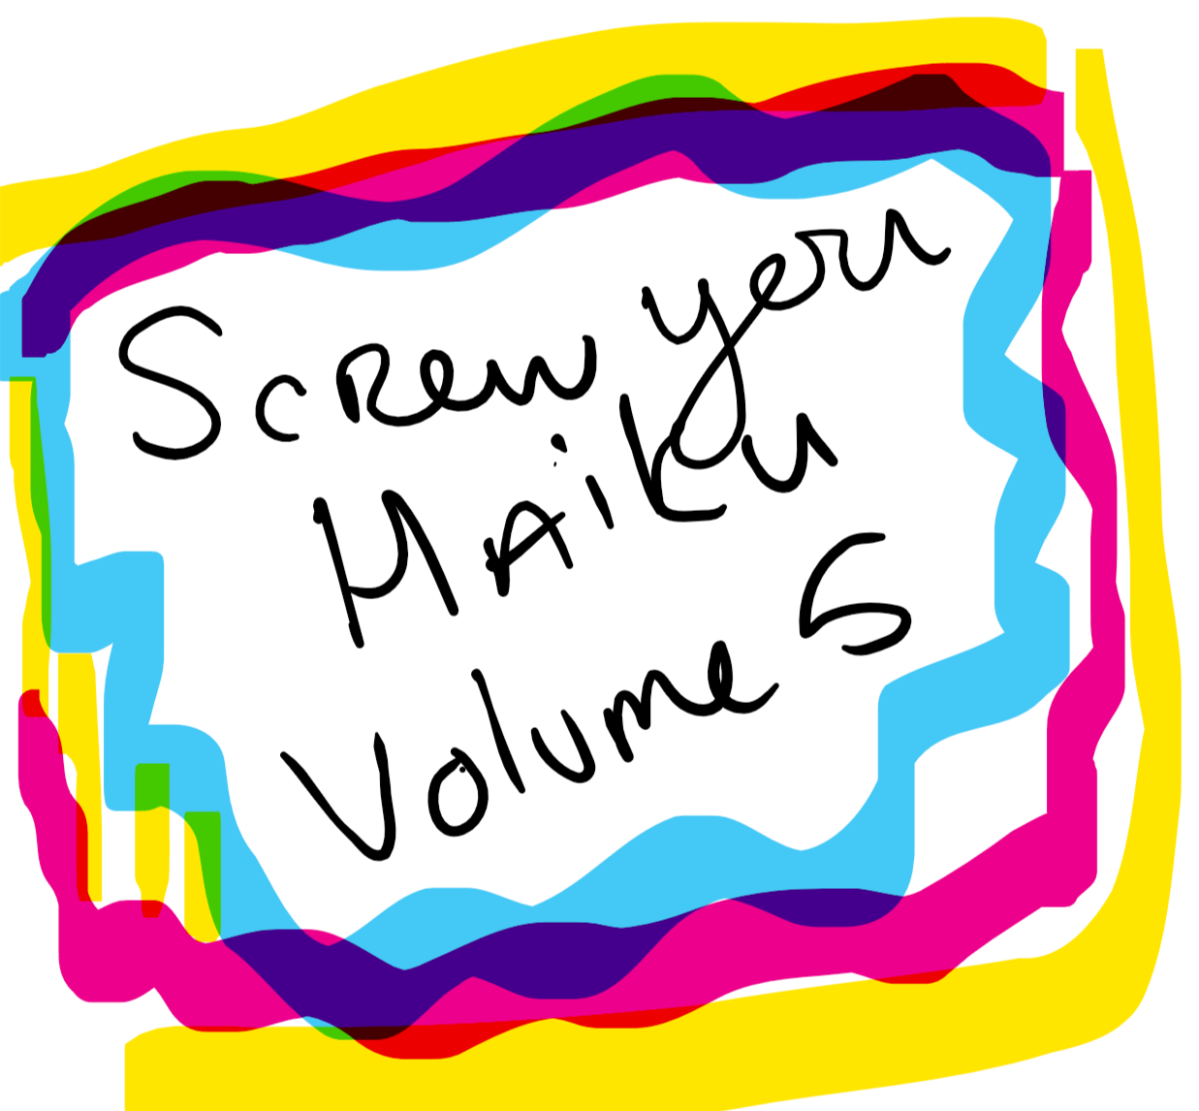 Screw you haiku – Volume 5